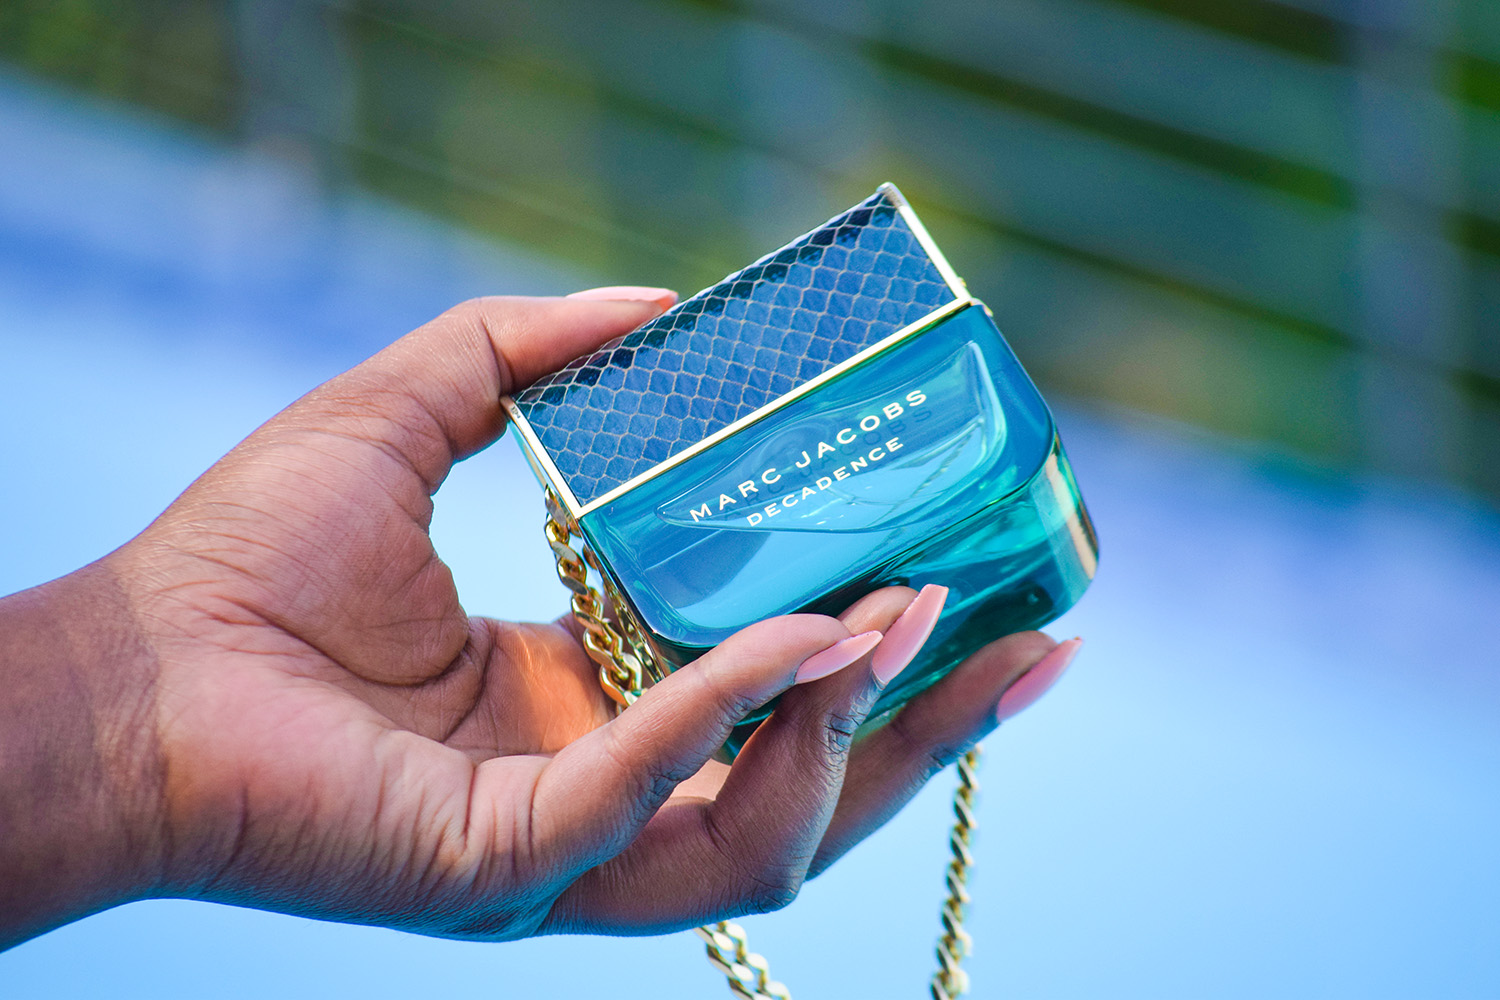 MARC JACOBS DECADENCE: POWERFUL, BOLD